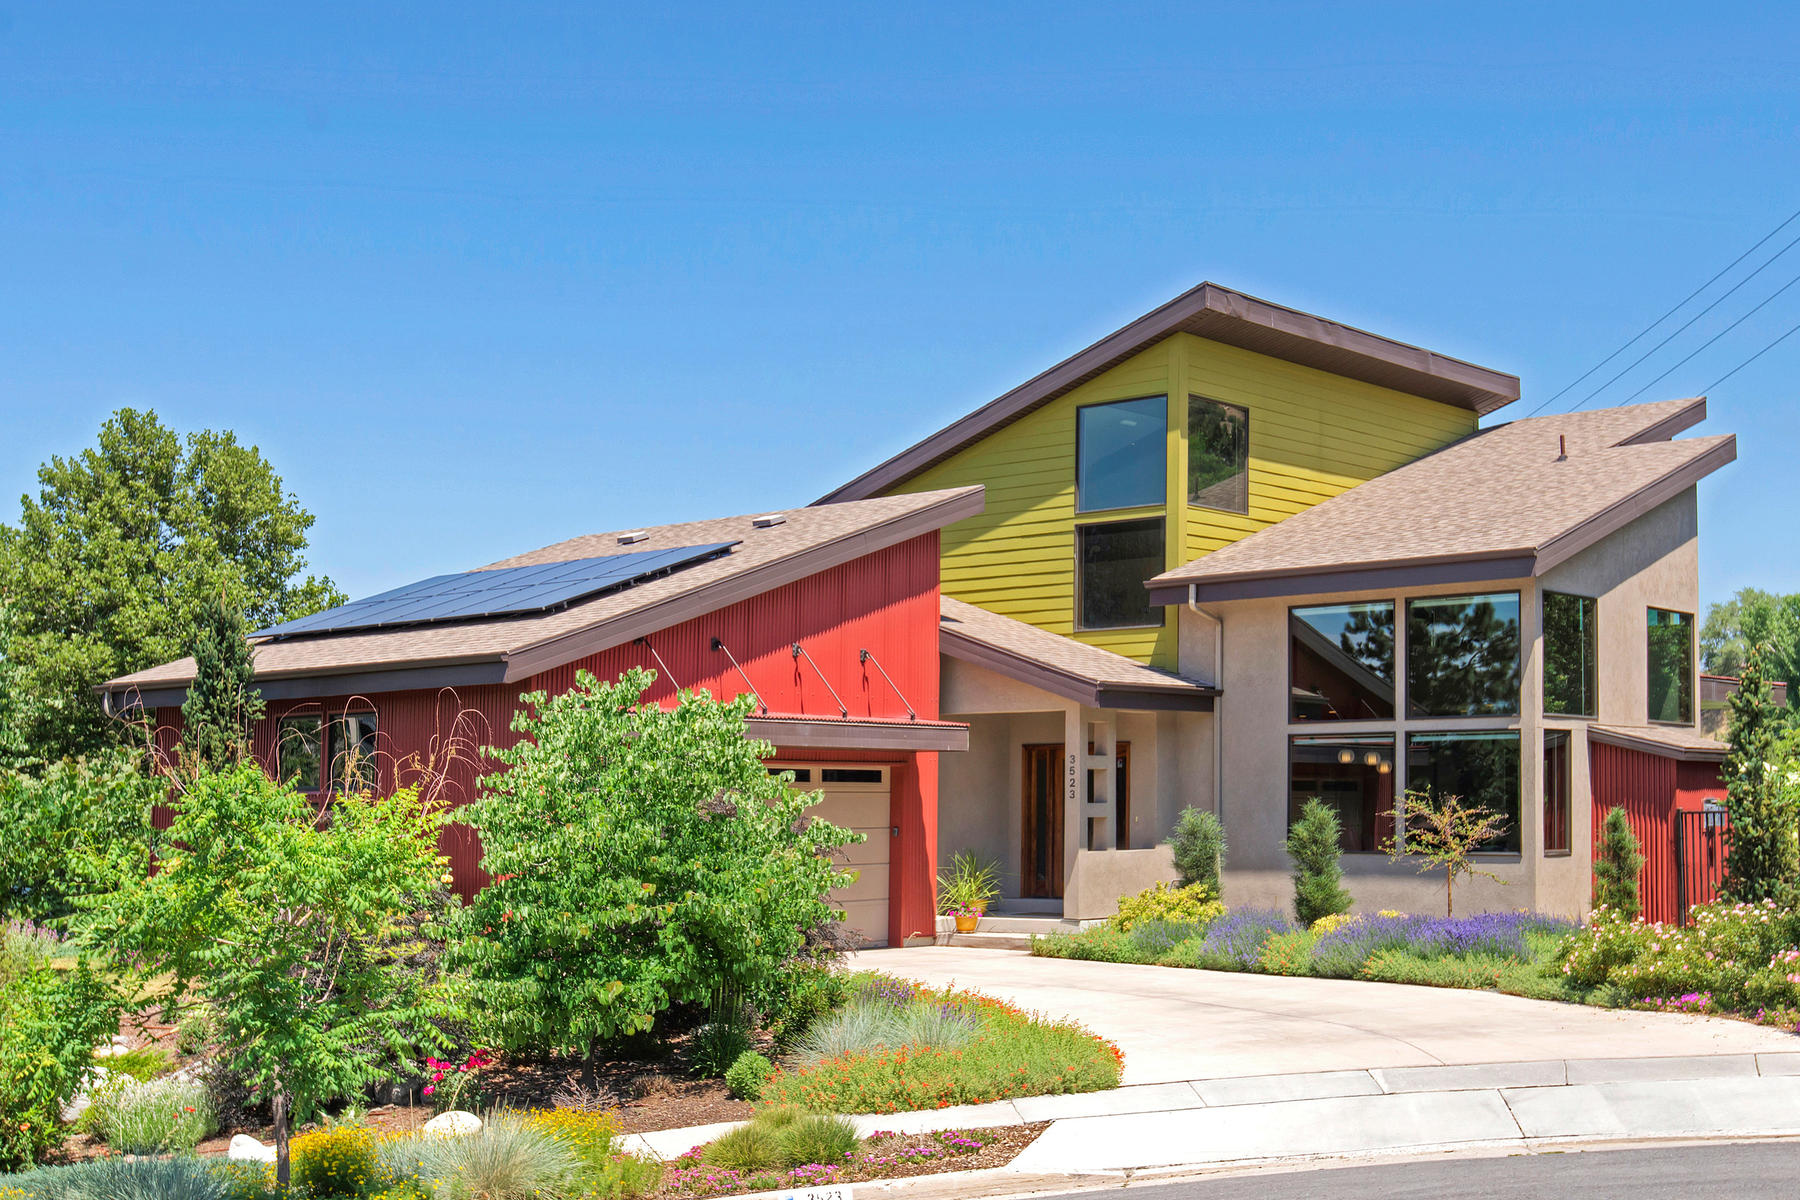 Single Family Home for Sale at Views. Privacy. Outdoor Living. Location. Solar Efficiency. 3523 East 8740 Sourh Cottonwood Heights, Utah 84121 United States